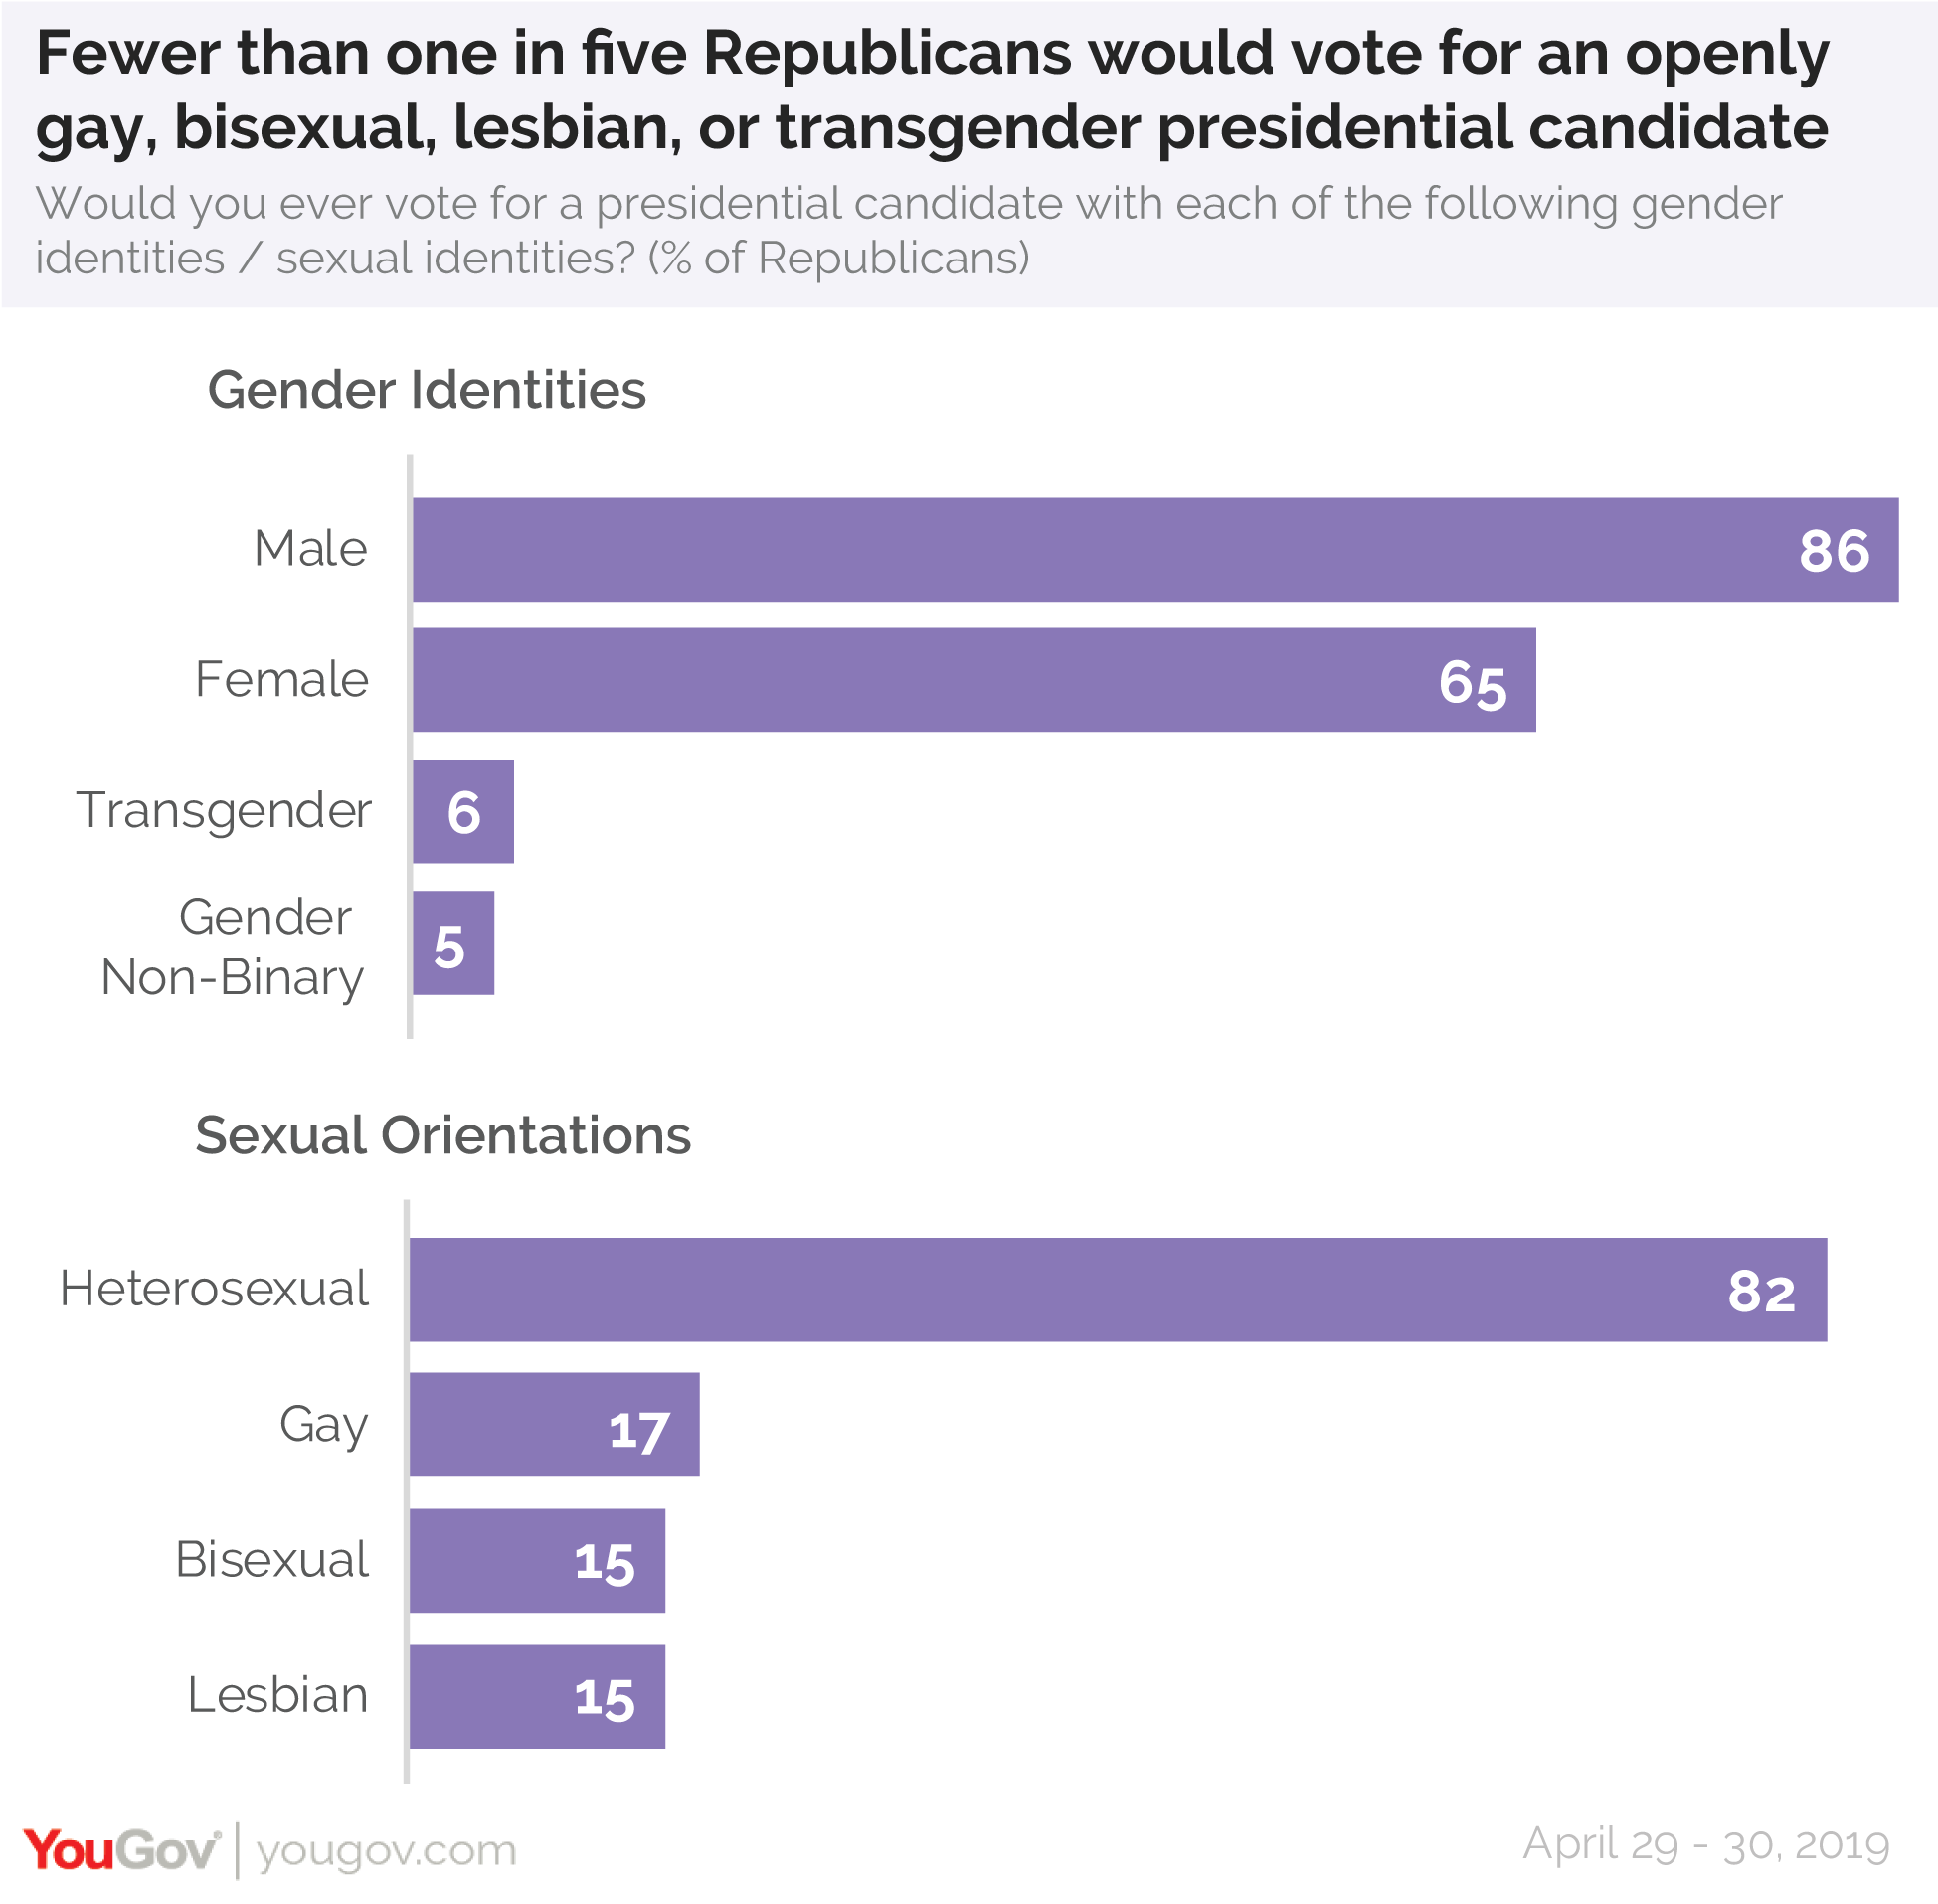 Fewer than one in five Republicans would vote for an openly gay, bisexual, lesbian, or transgender presidential candidate